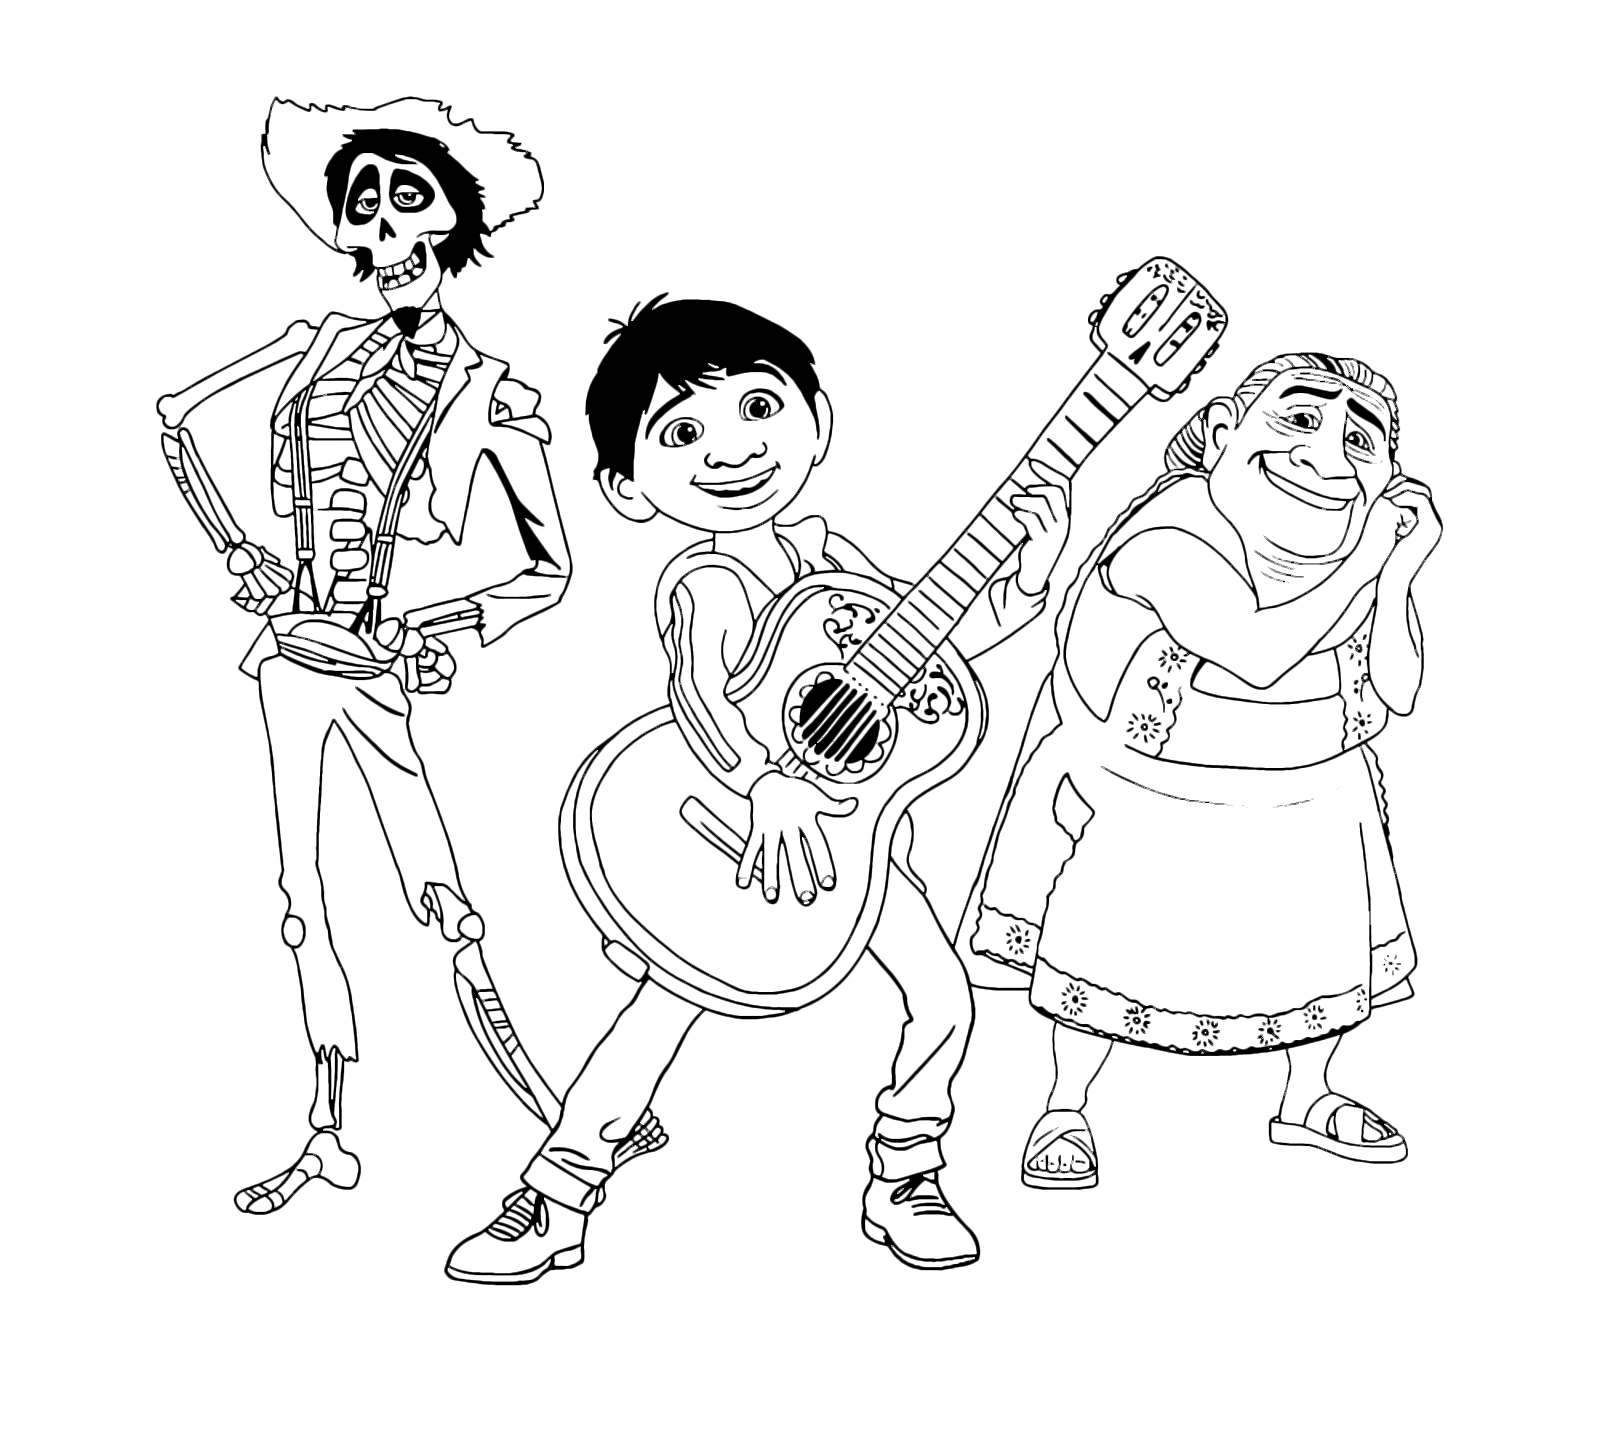 Coco Miguel Plays The Guitar While Abuelita And Hector Watch Him